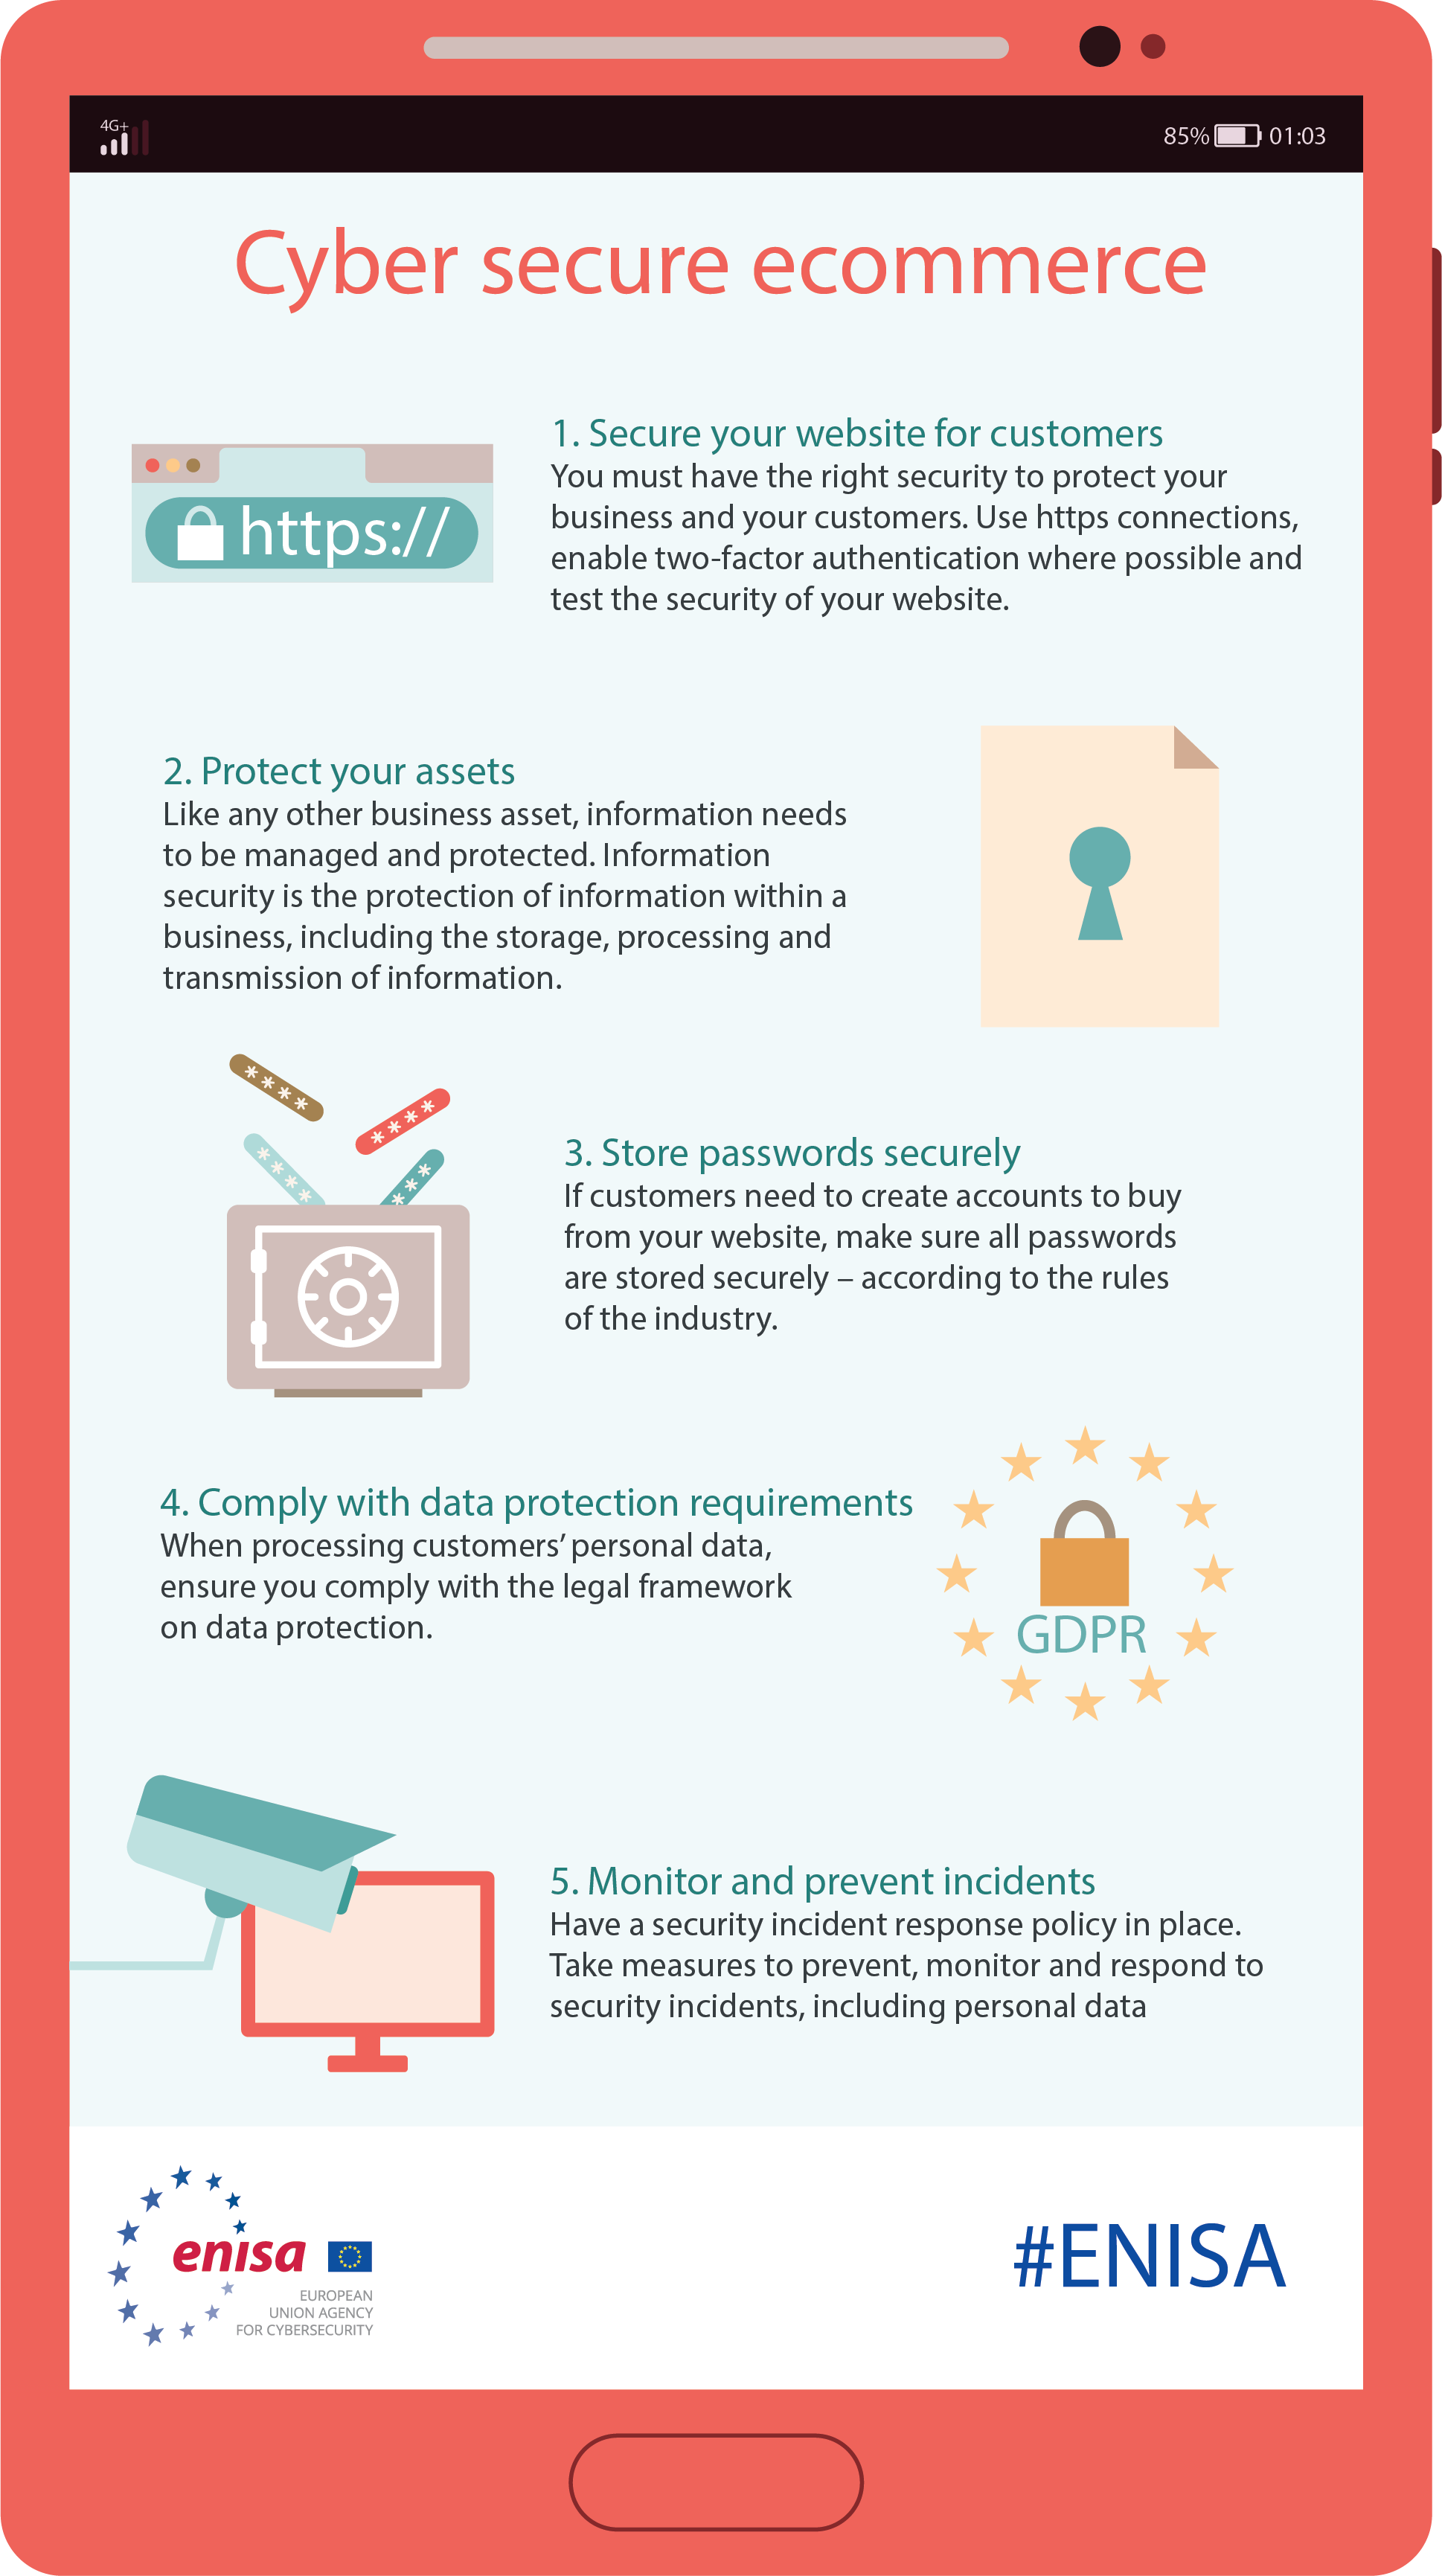 INFOGRAPHIC - Cyber Secure eCommerce